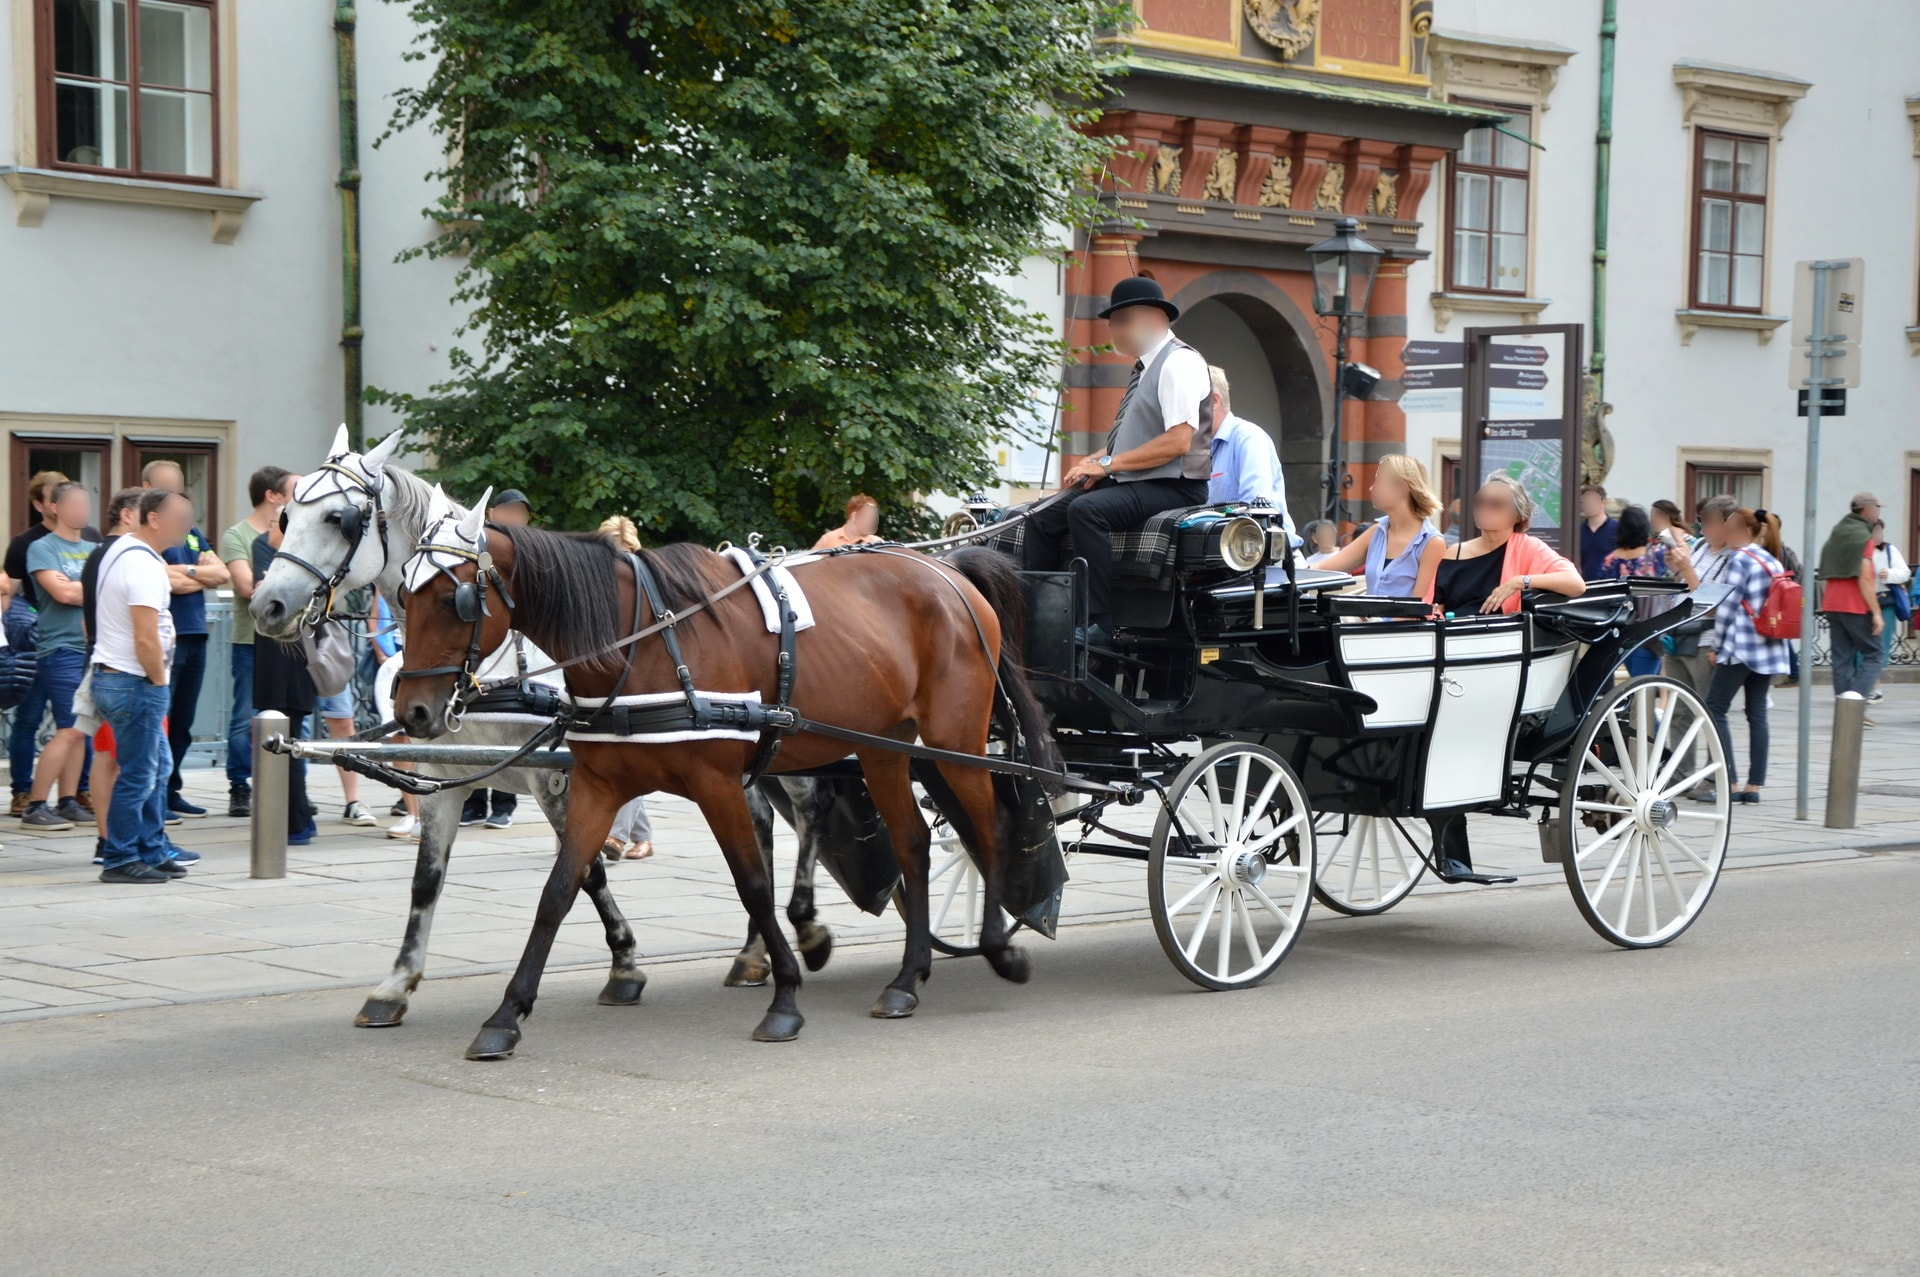 Horse-drawn carriage rides are a great way to explore and feel the city